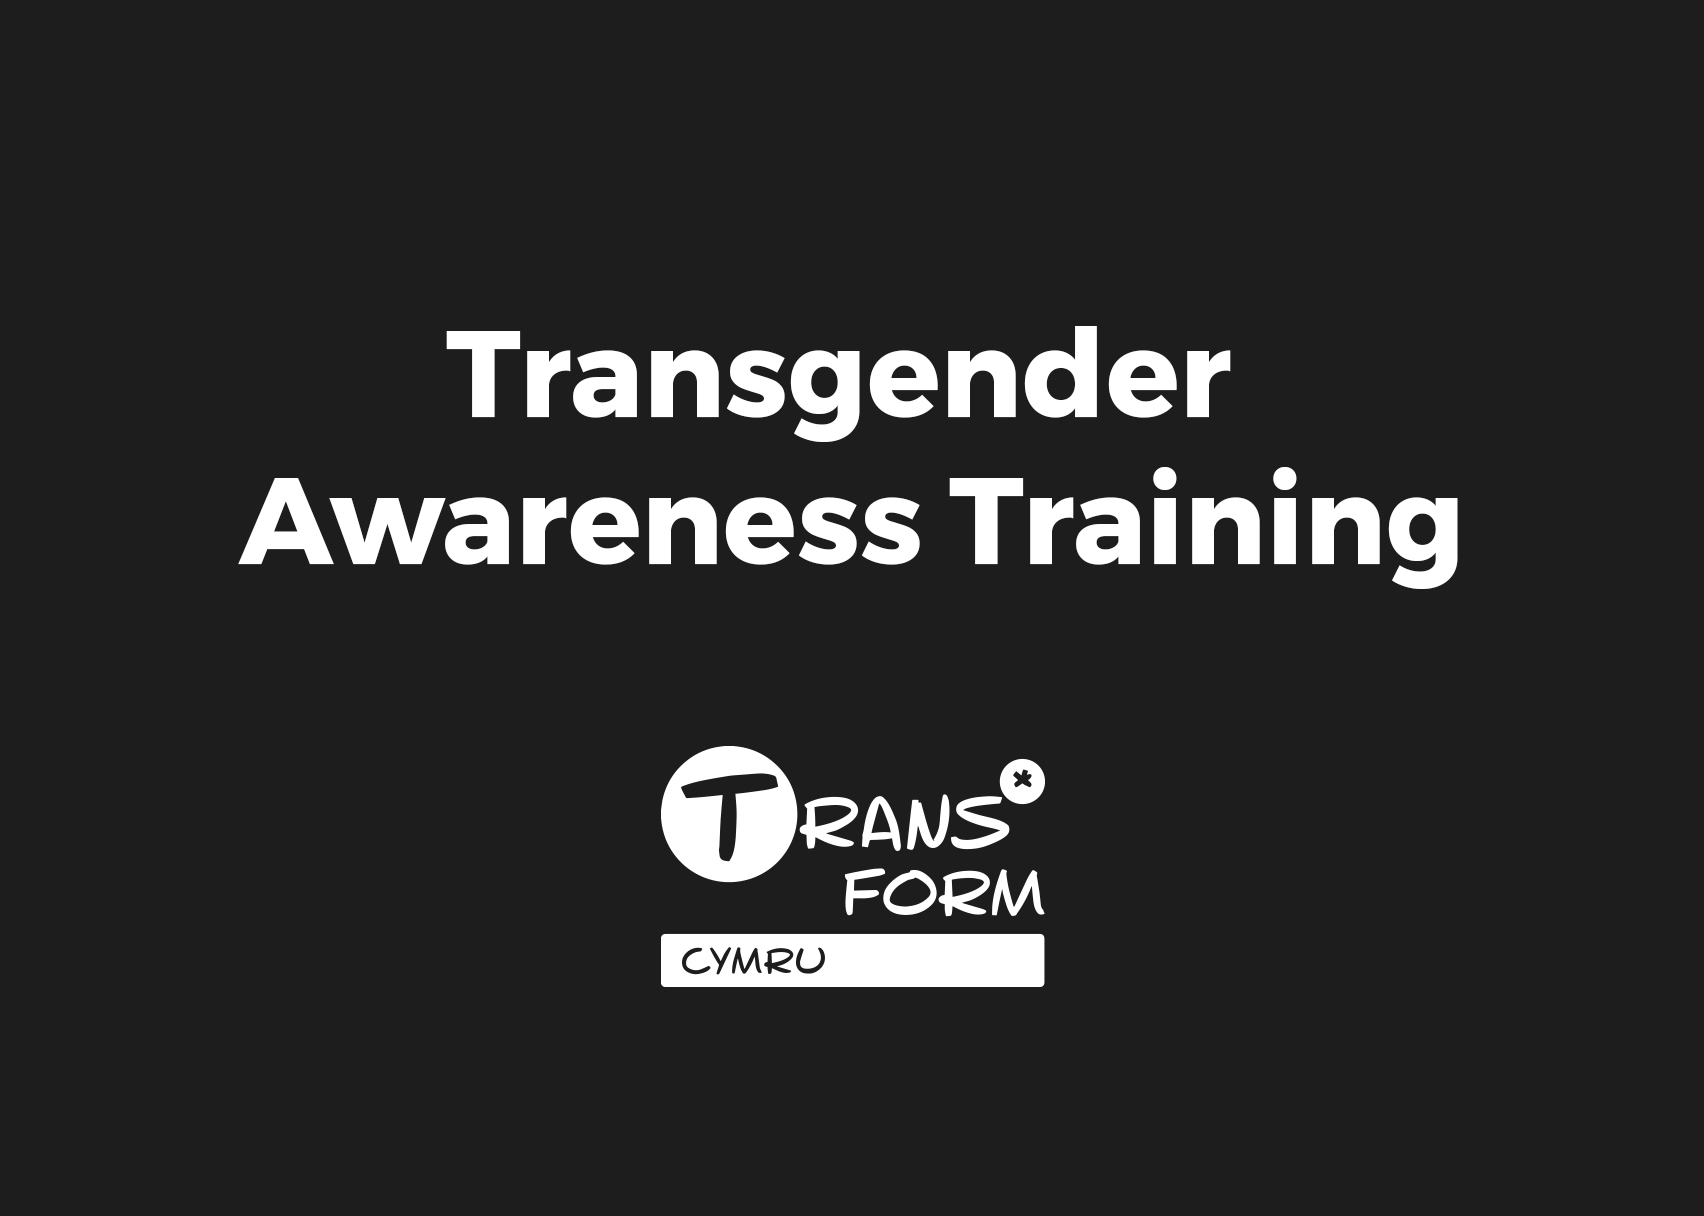 Free Transgender Awareness training